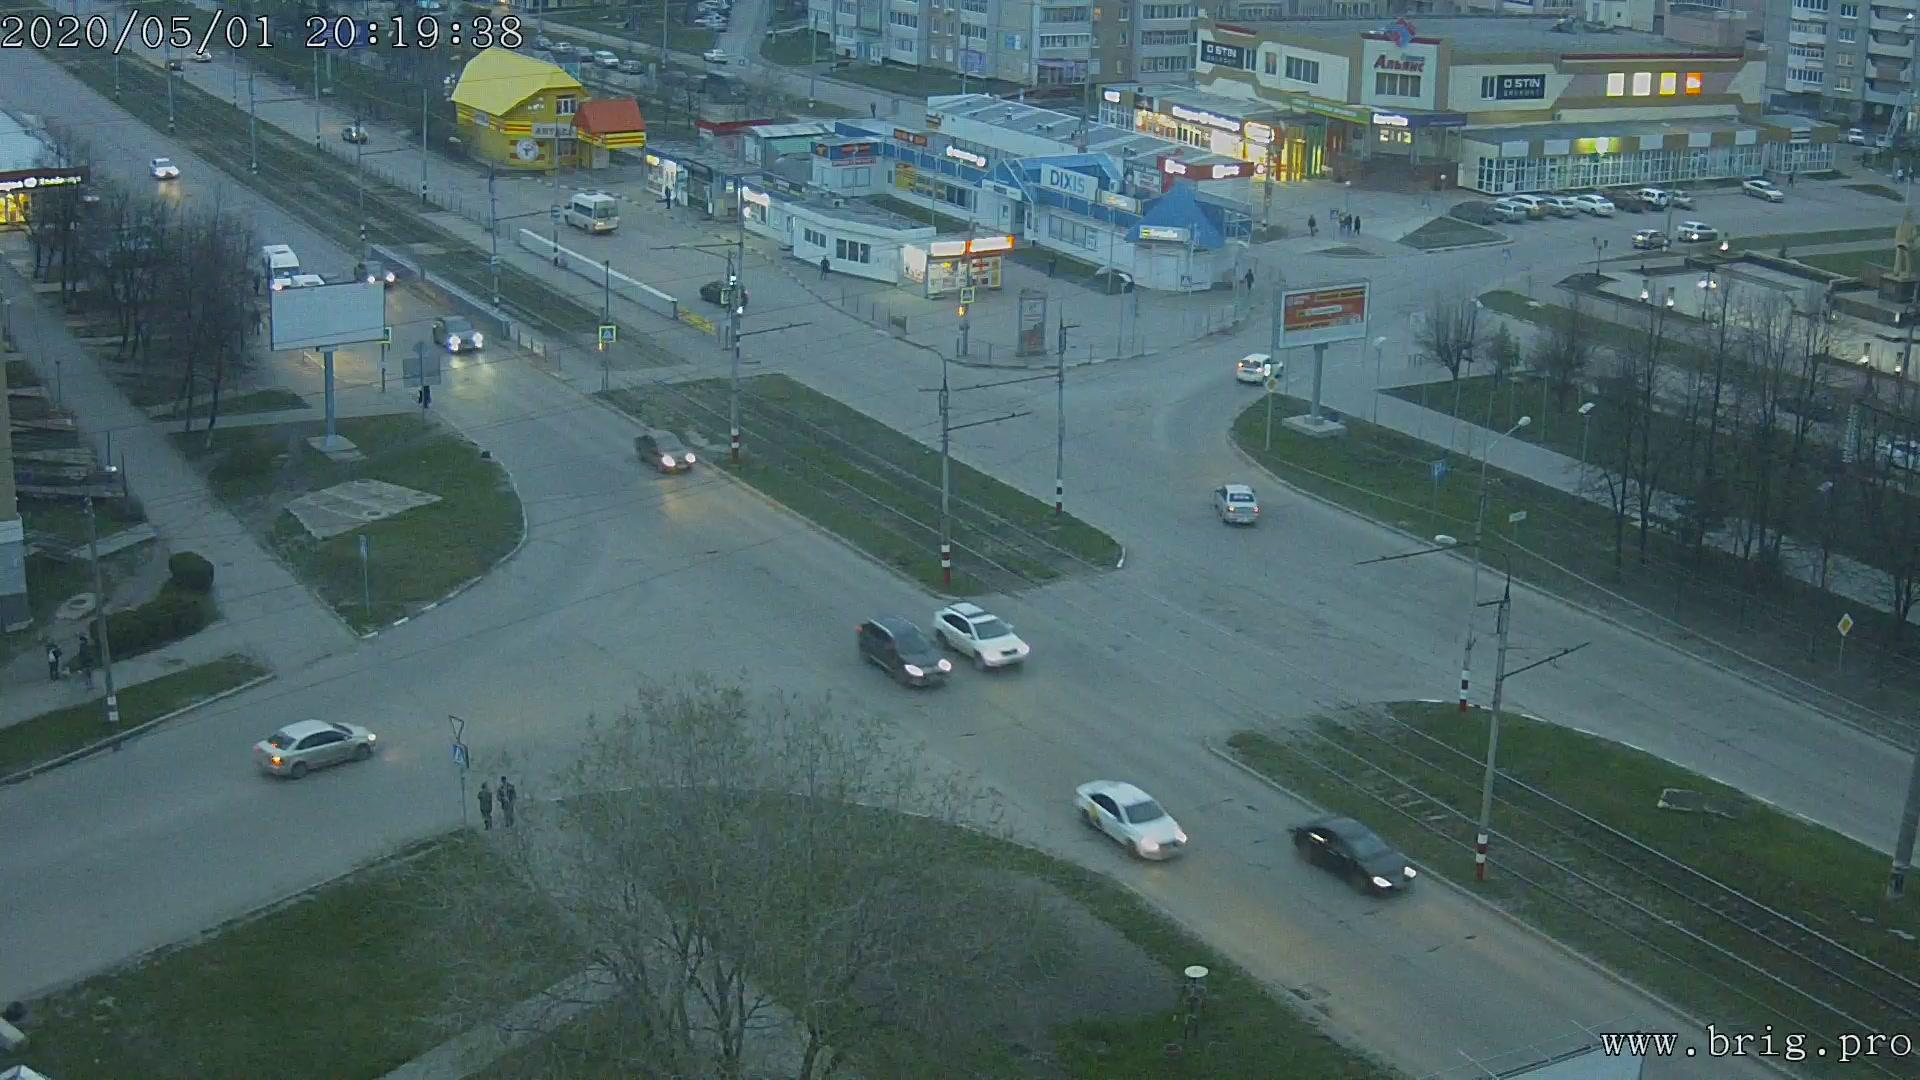 Webcam Prigorodnyy › South-East: город Ульяновск, улица К